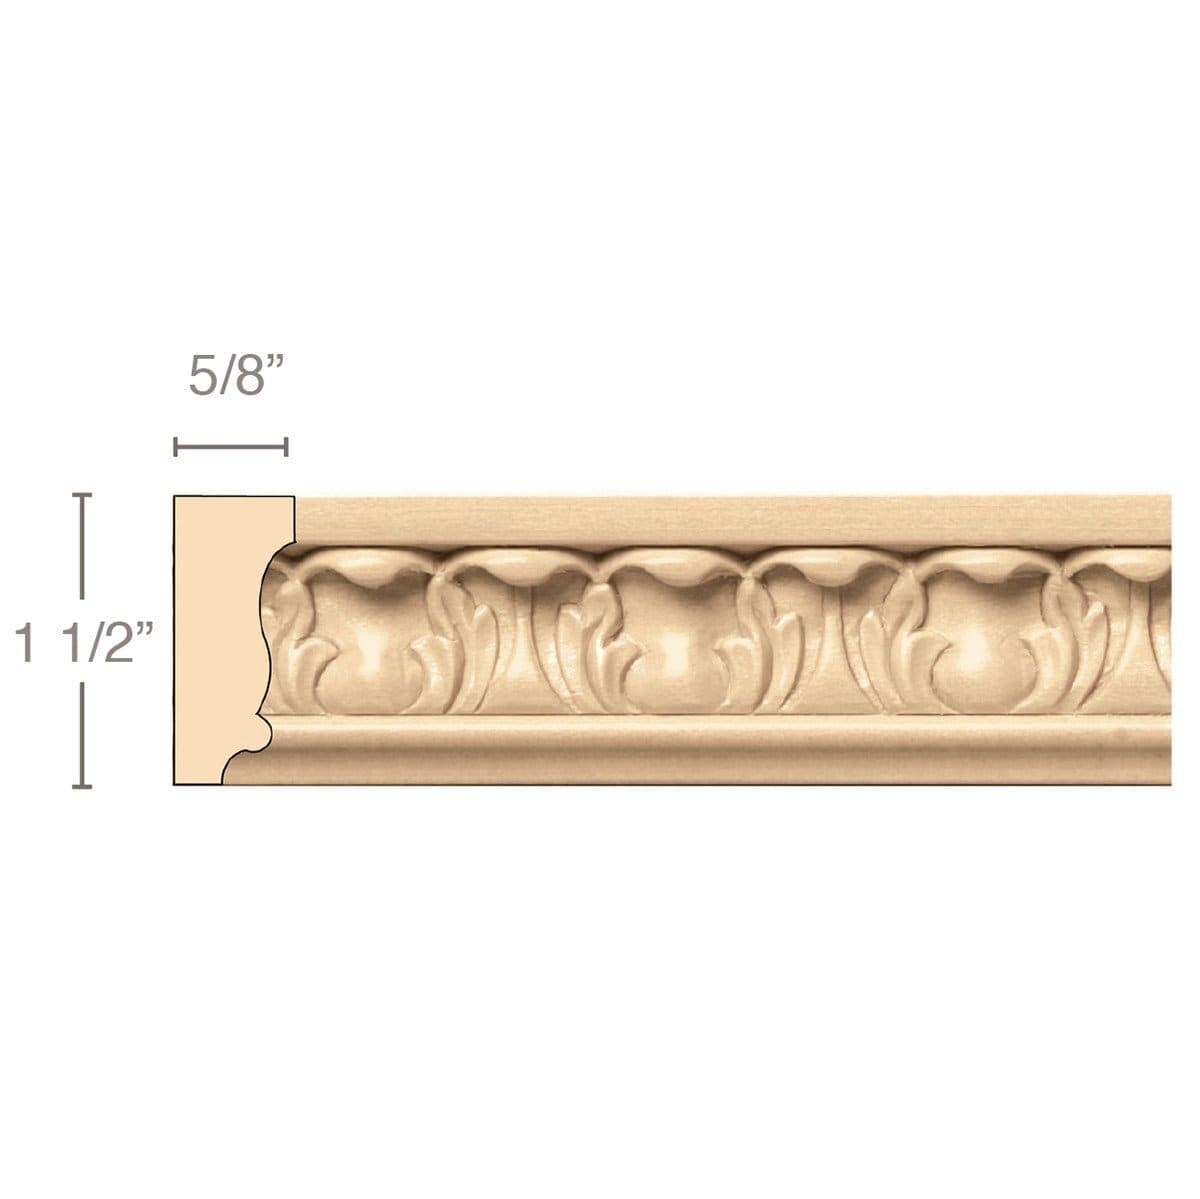 Acanthus Panel Mould(Repeats 1 5/8), 1 1/2''w x 5/8''d x 8' length